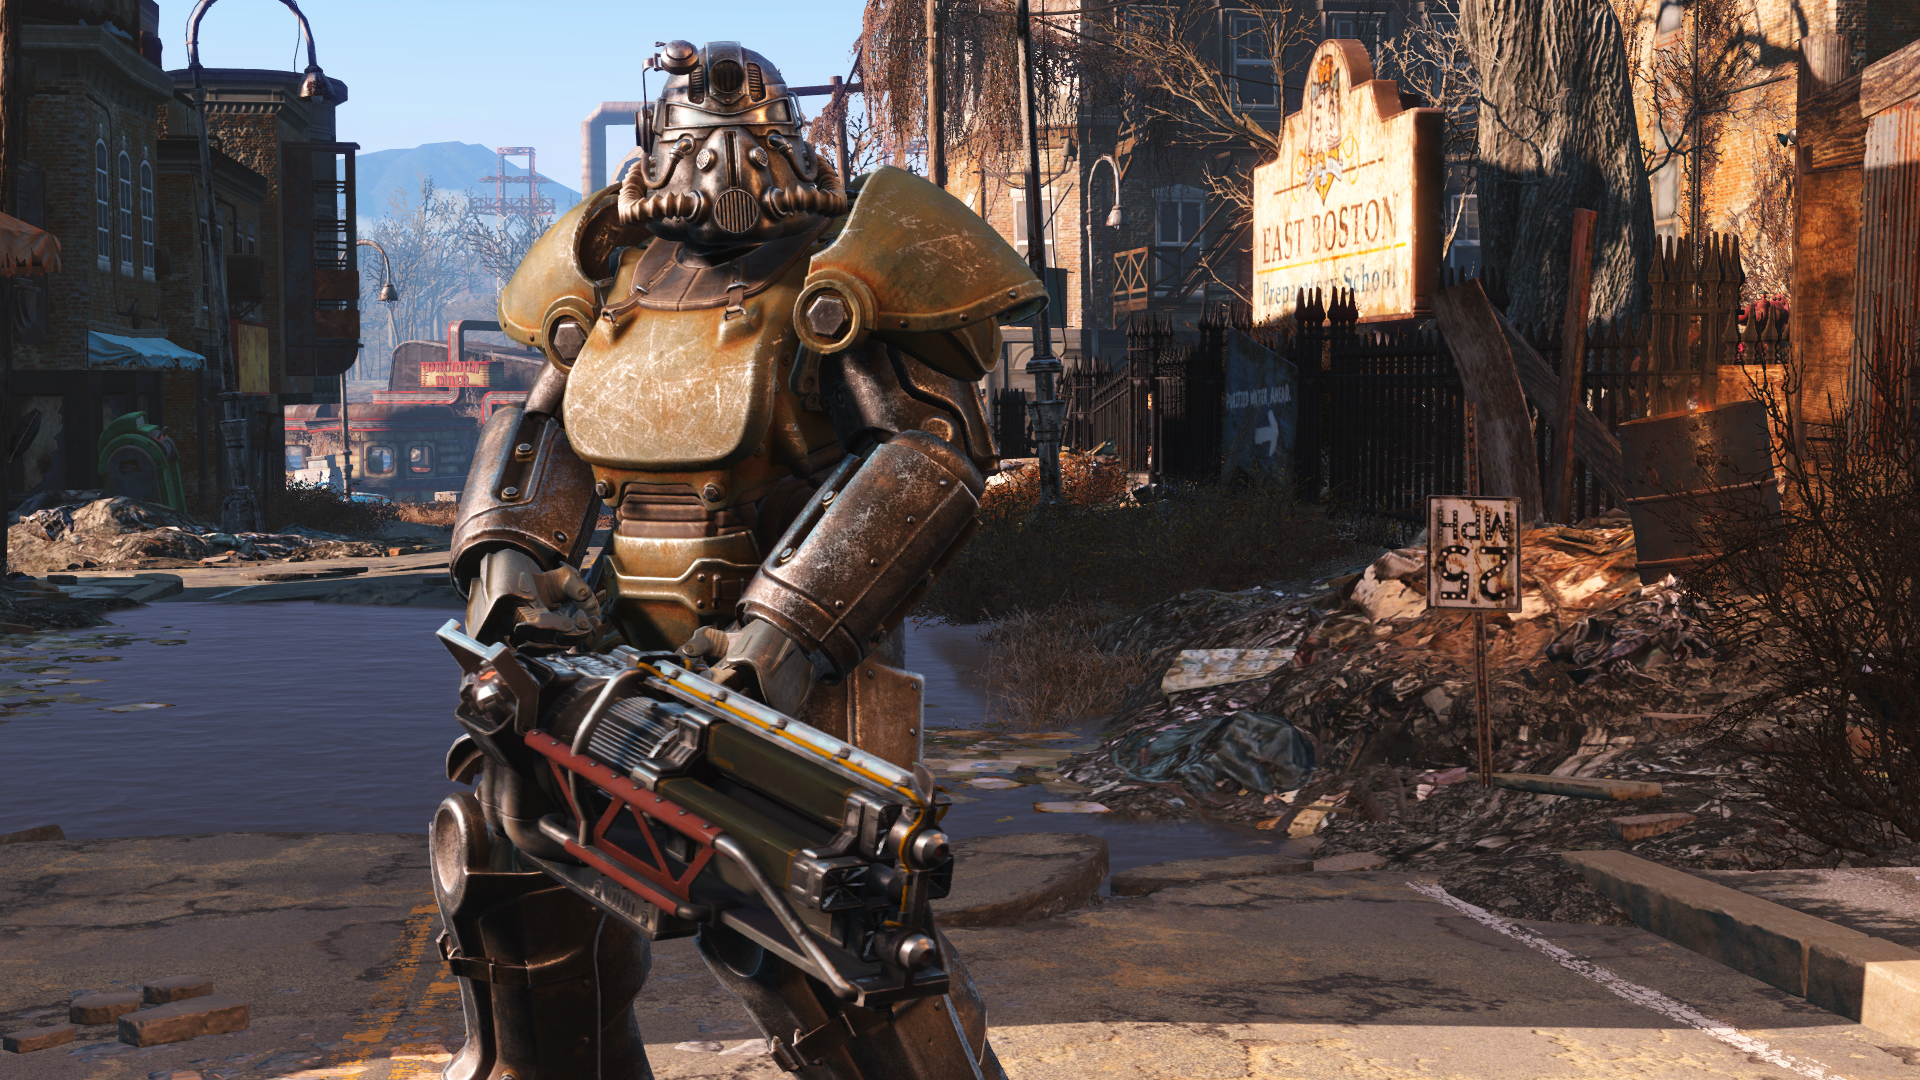 Fallout 4 Creation Kit finally unleashes the full power of